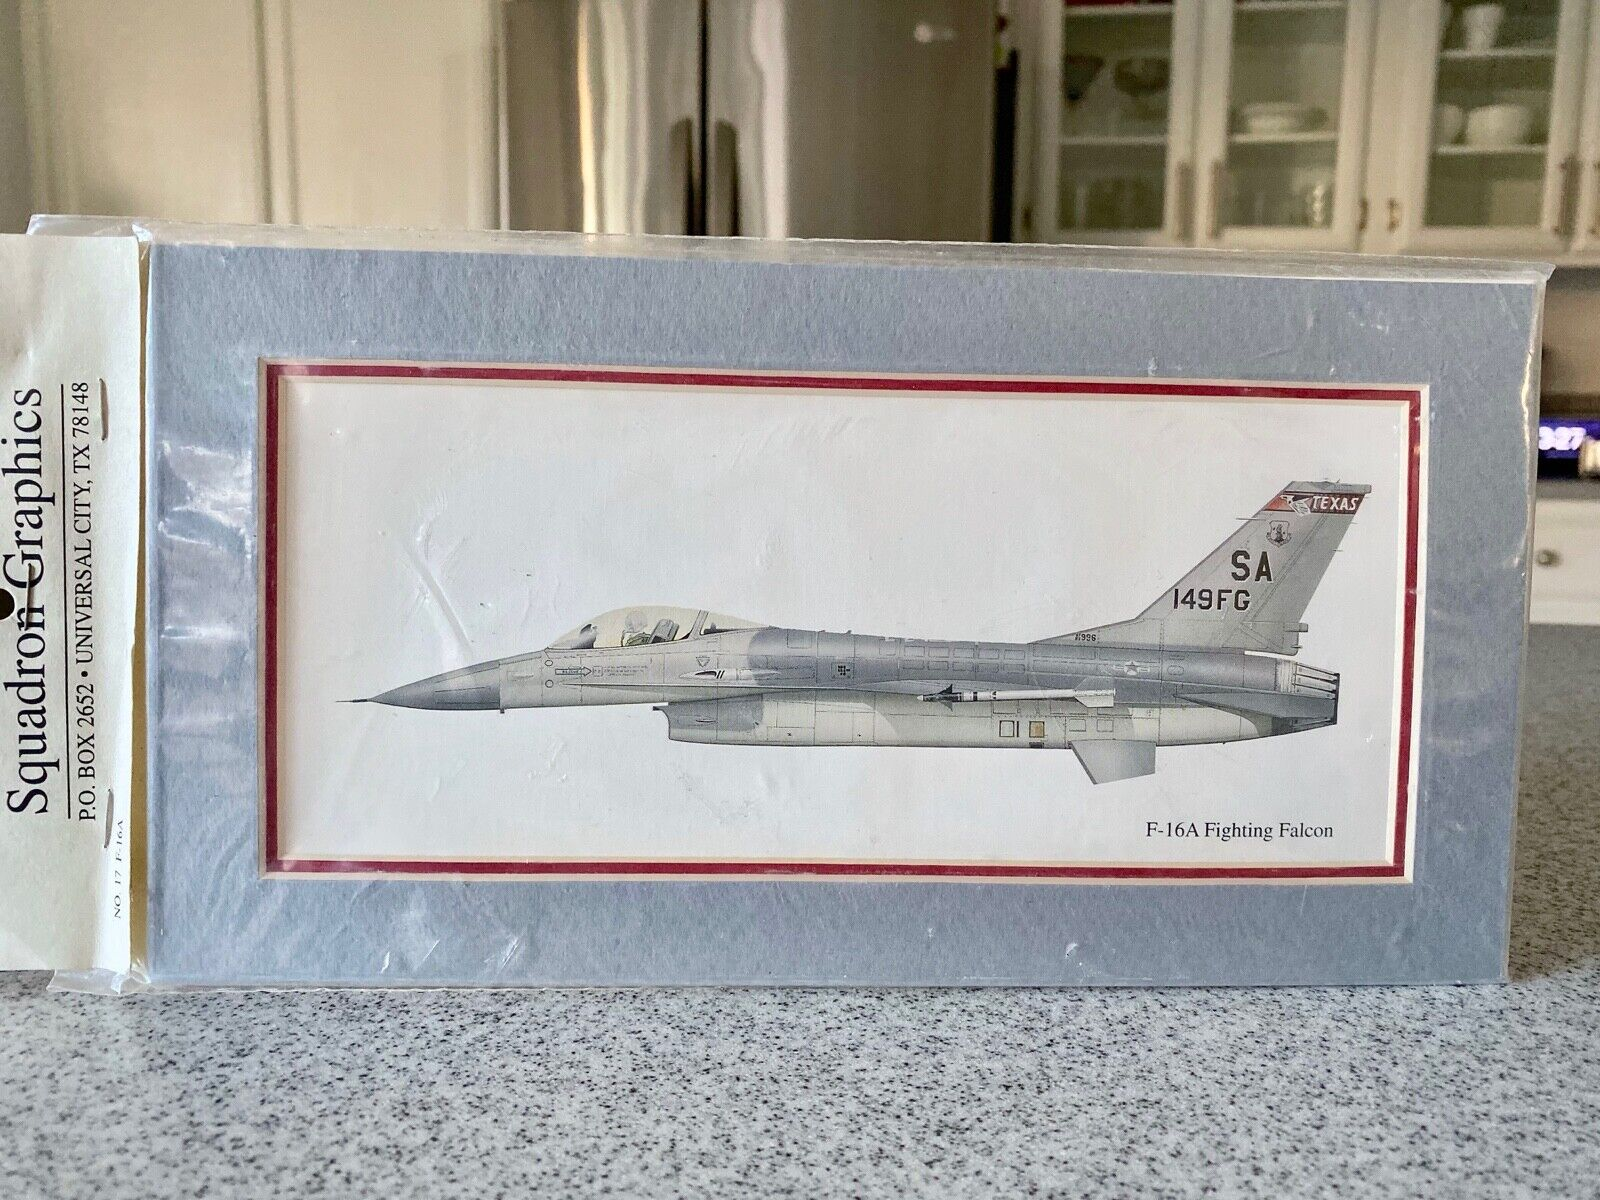 SQUADRON GRAPHICS F-16A FIGHTING FALCON  AIRCRAFT FRAMED  PRINT NEW